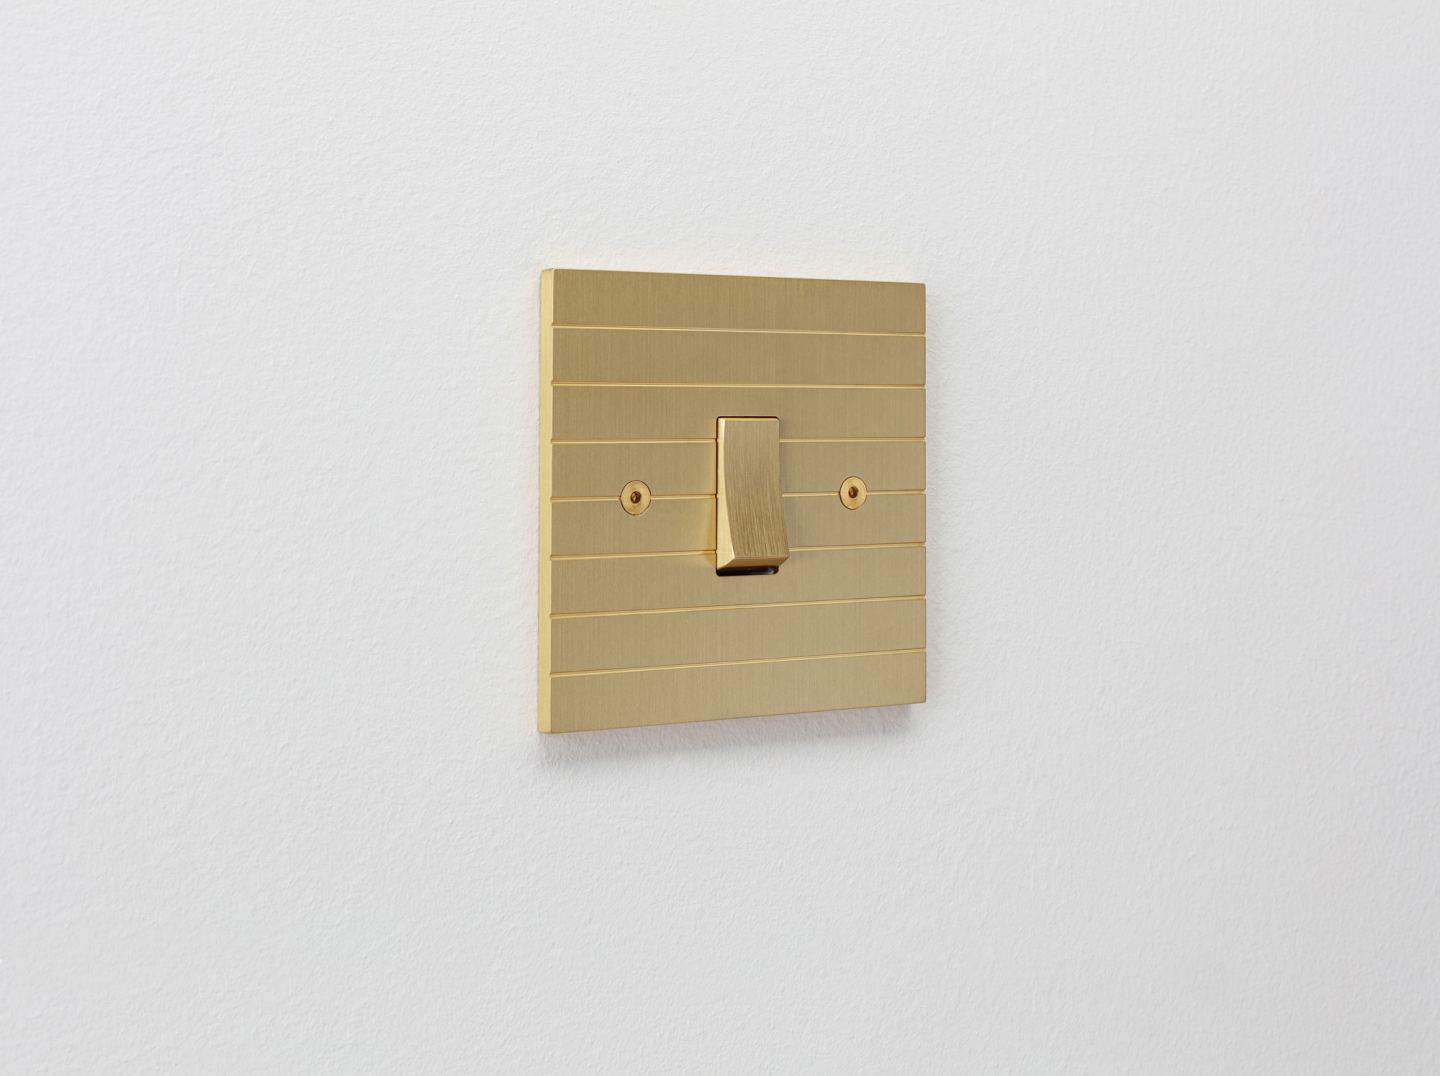 Designer light switches by Kelly Hoppen for Focus SB. Plank is a gold light switch inspired by planks of wood and featuring horizontal grooves.